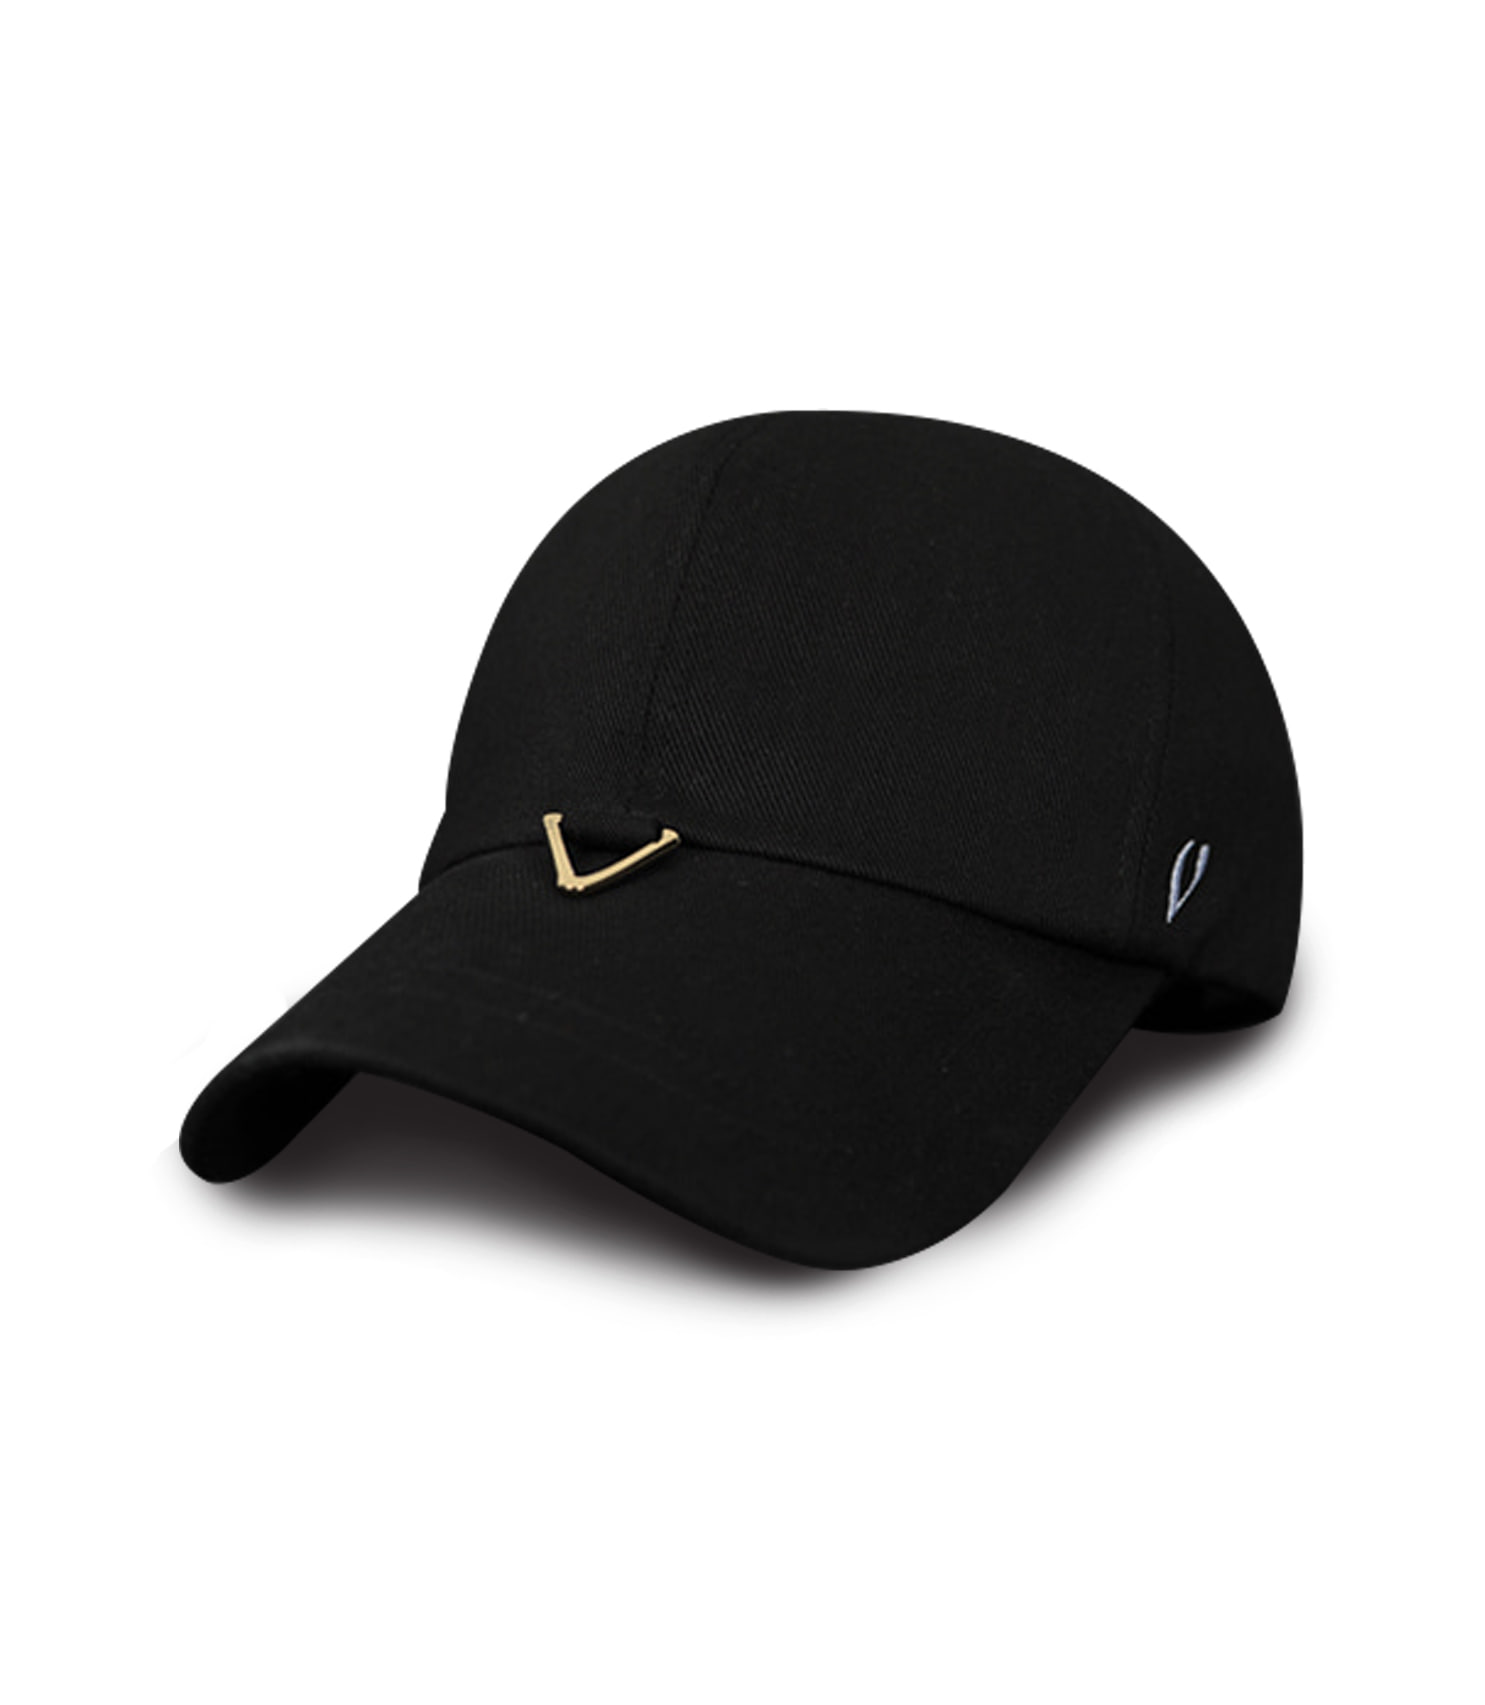 BLACK LINE - GOLD TRIANGLE VISOR BALL CAP (BLACK)